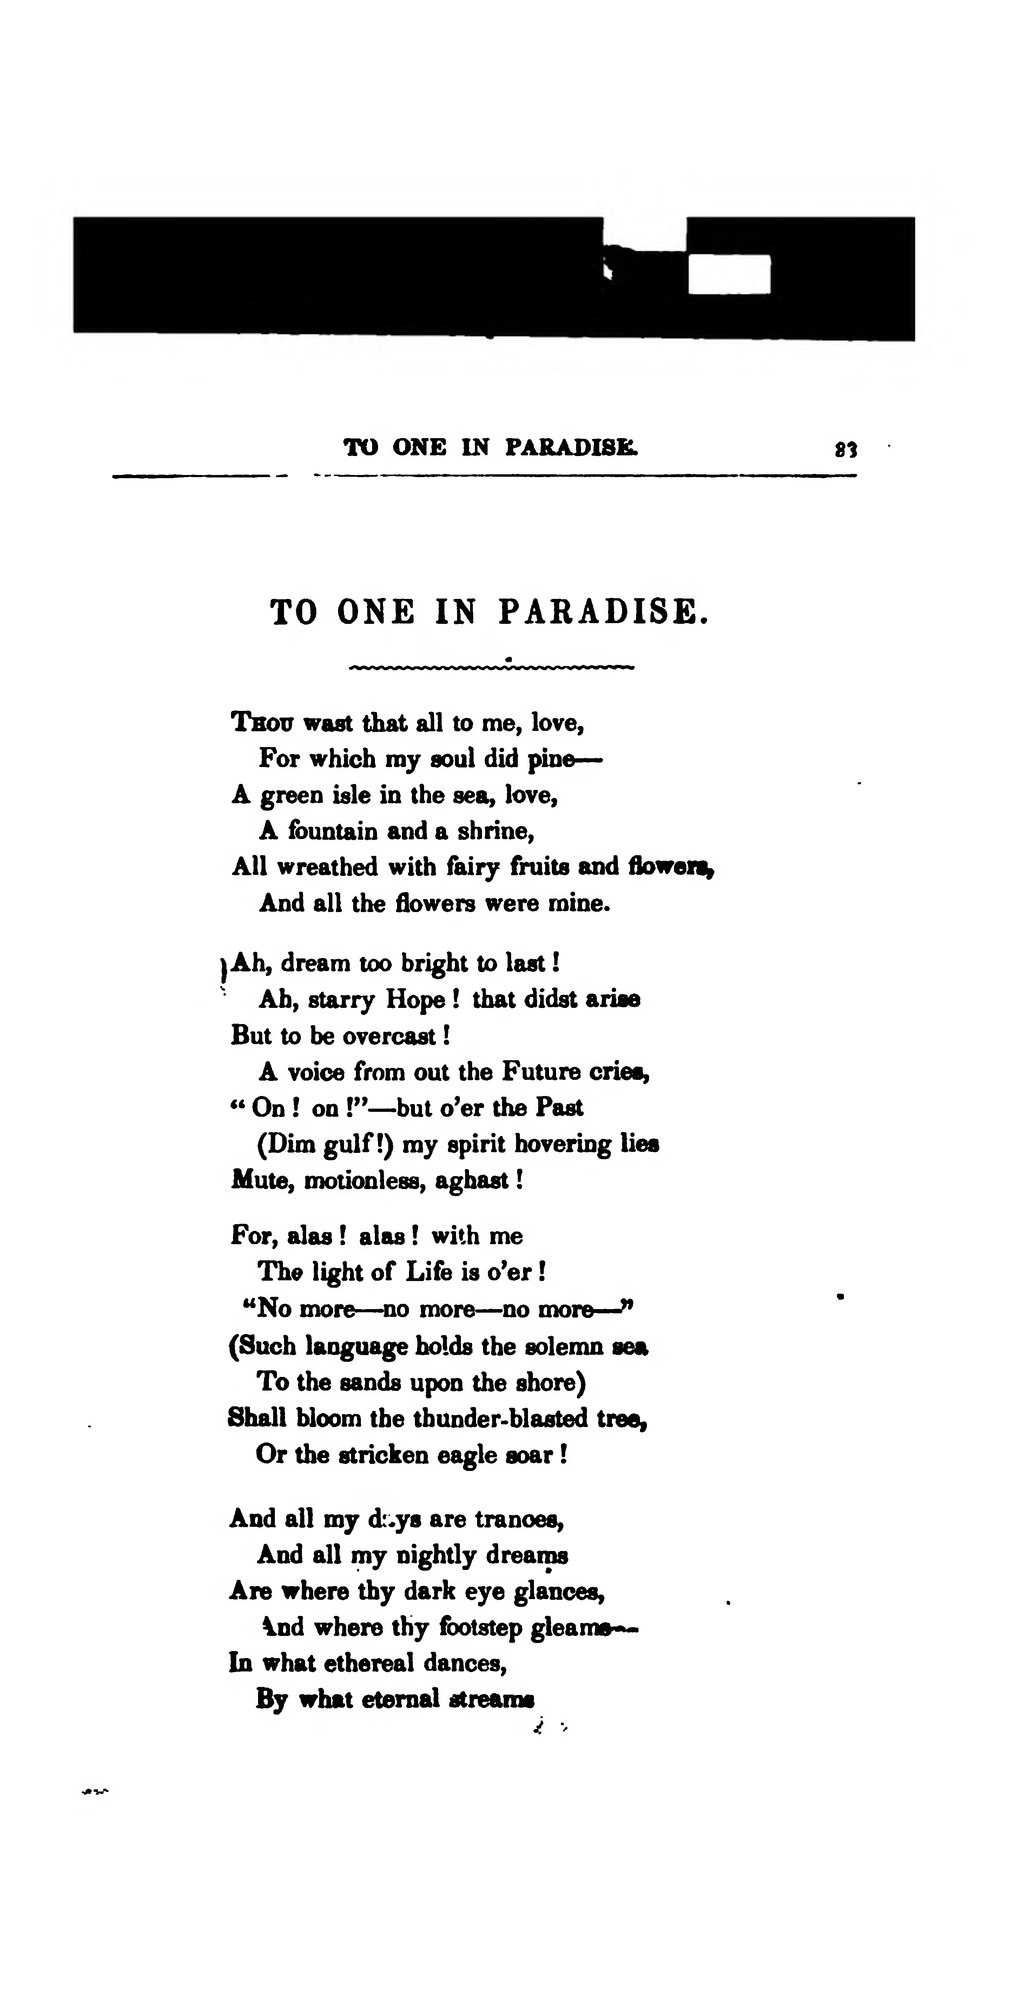 To One in Paradise